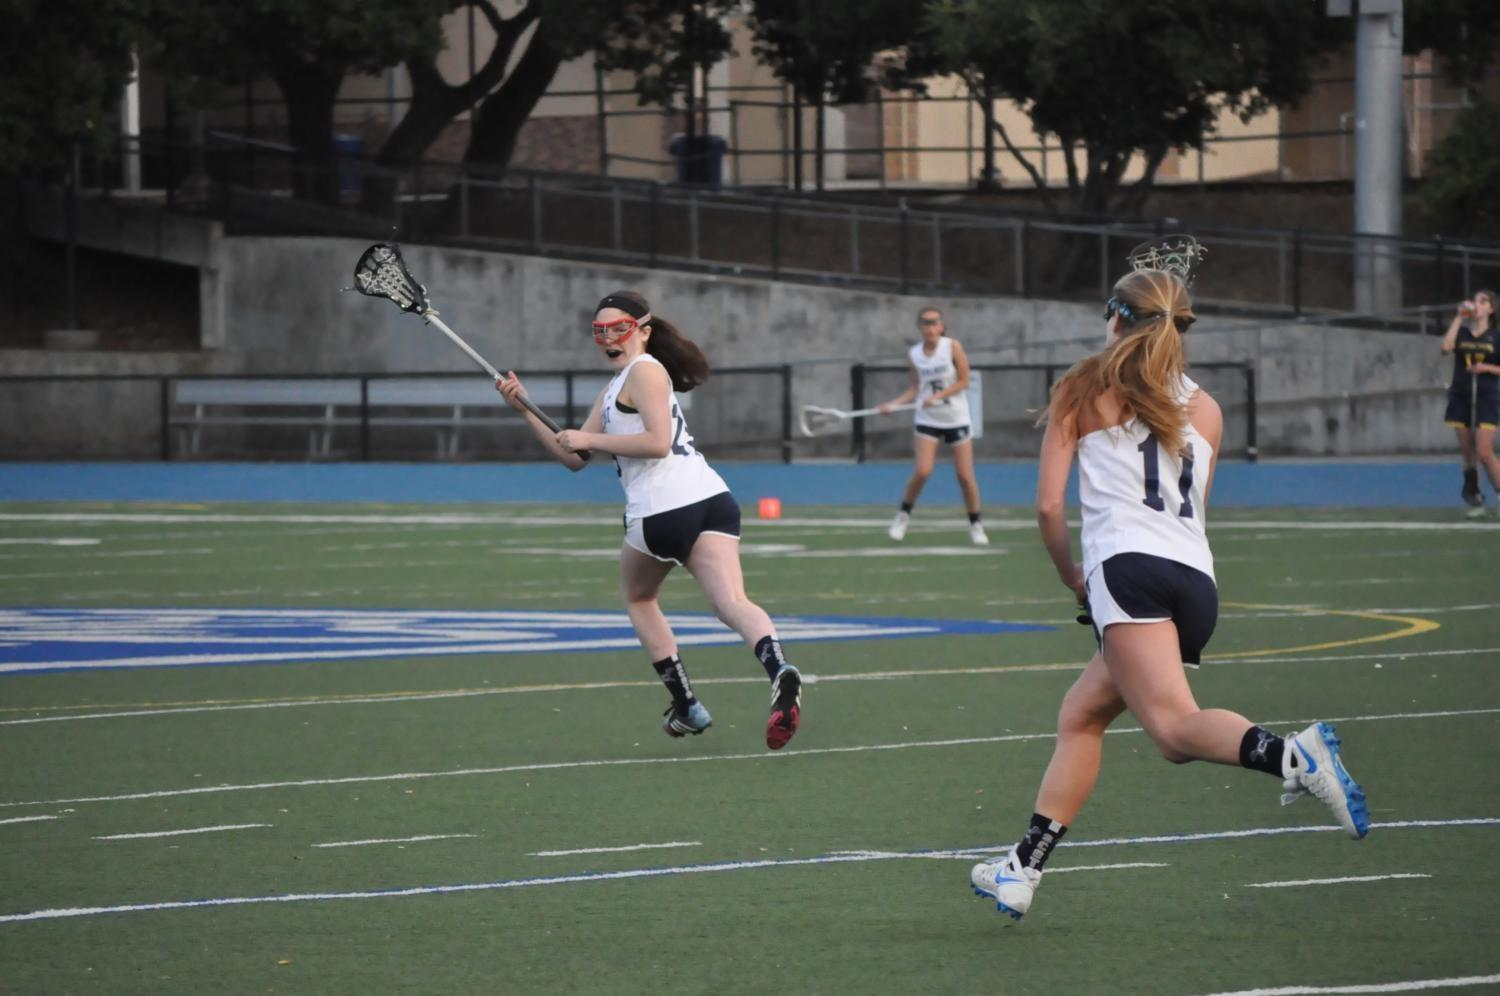 Lillian Diesh, a junior, runs downfield awaiting the pass from Caroline Concilla, a senior.